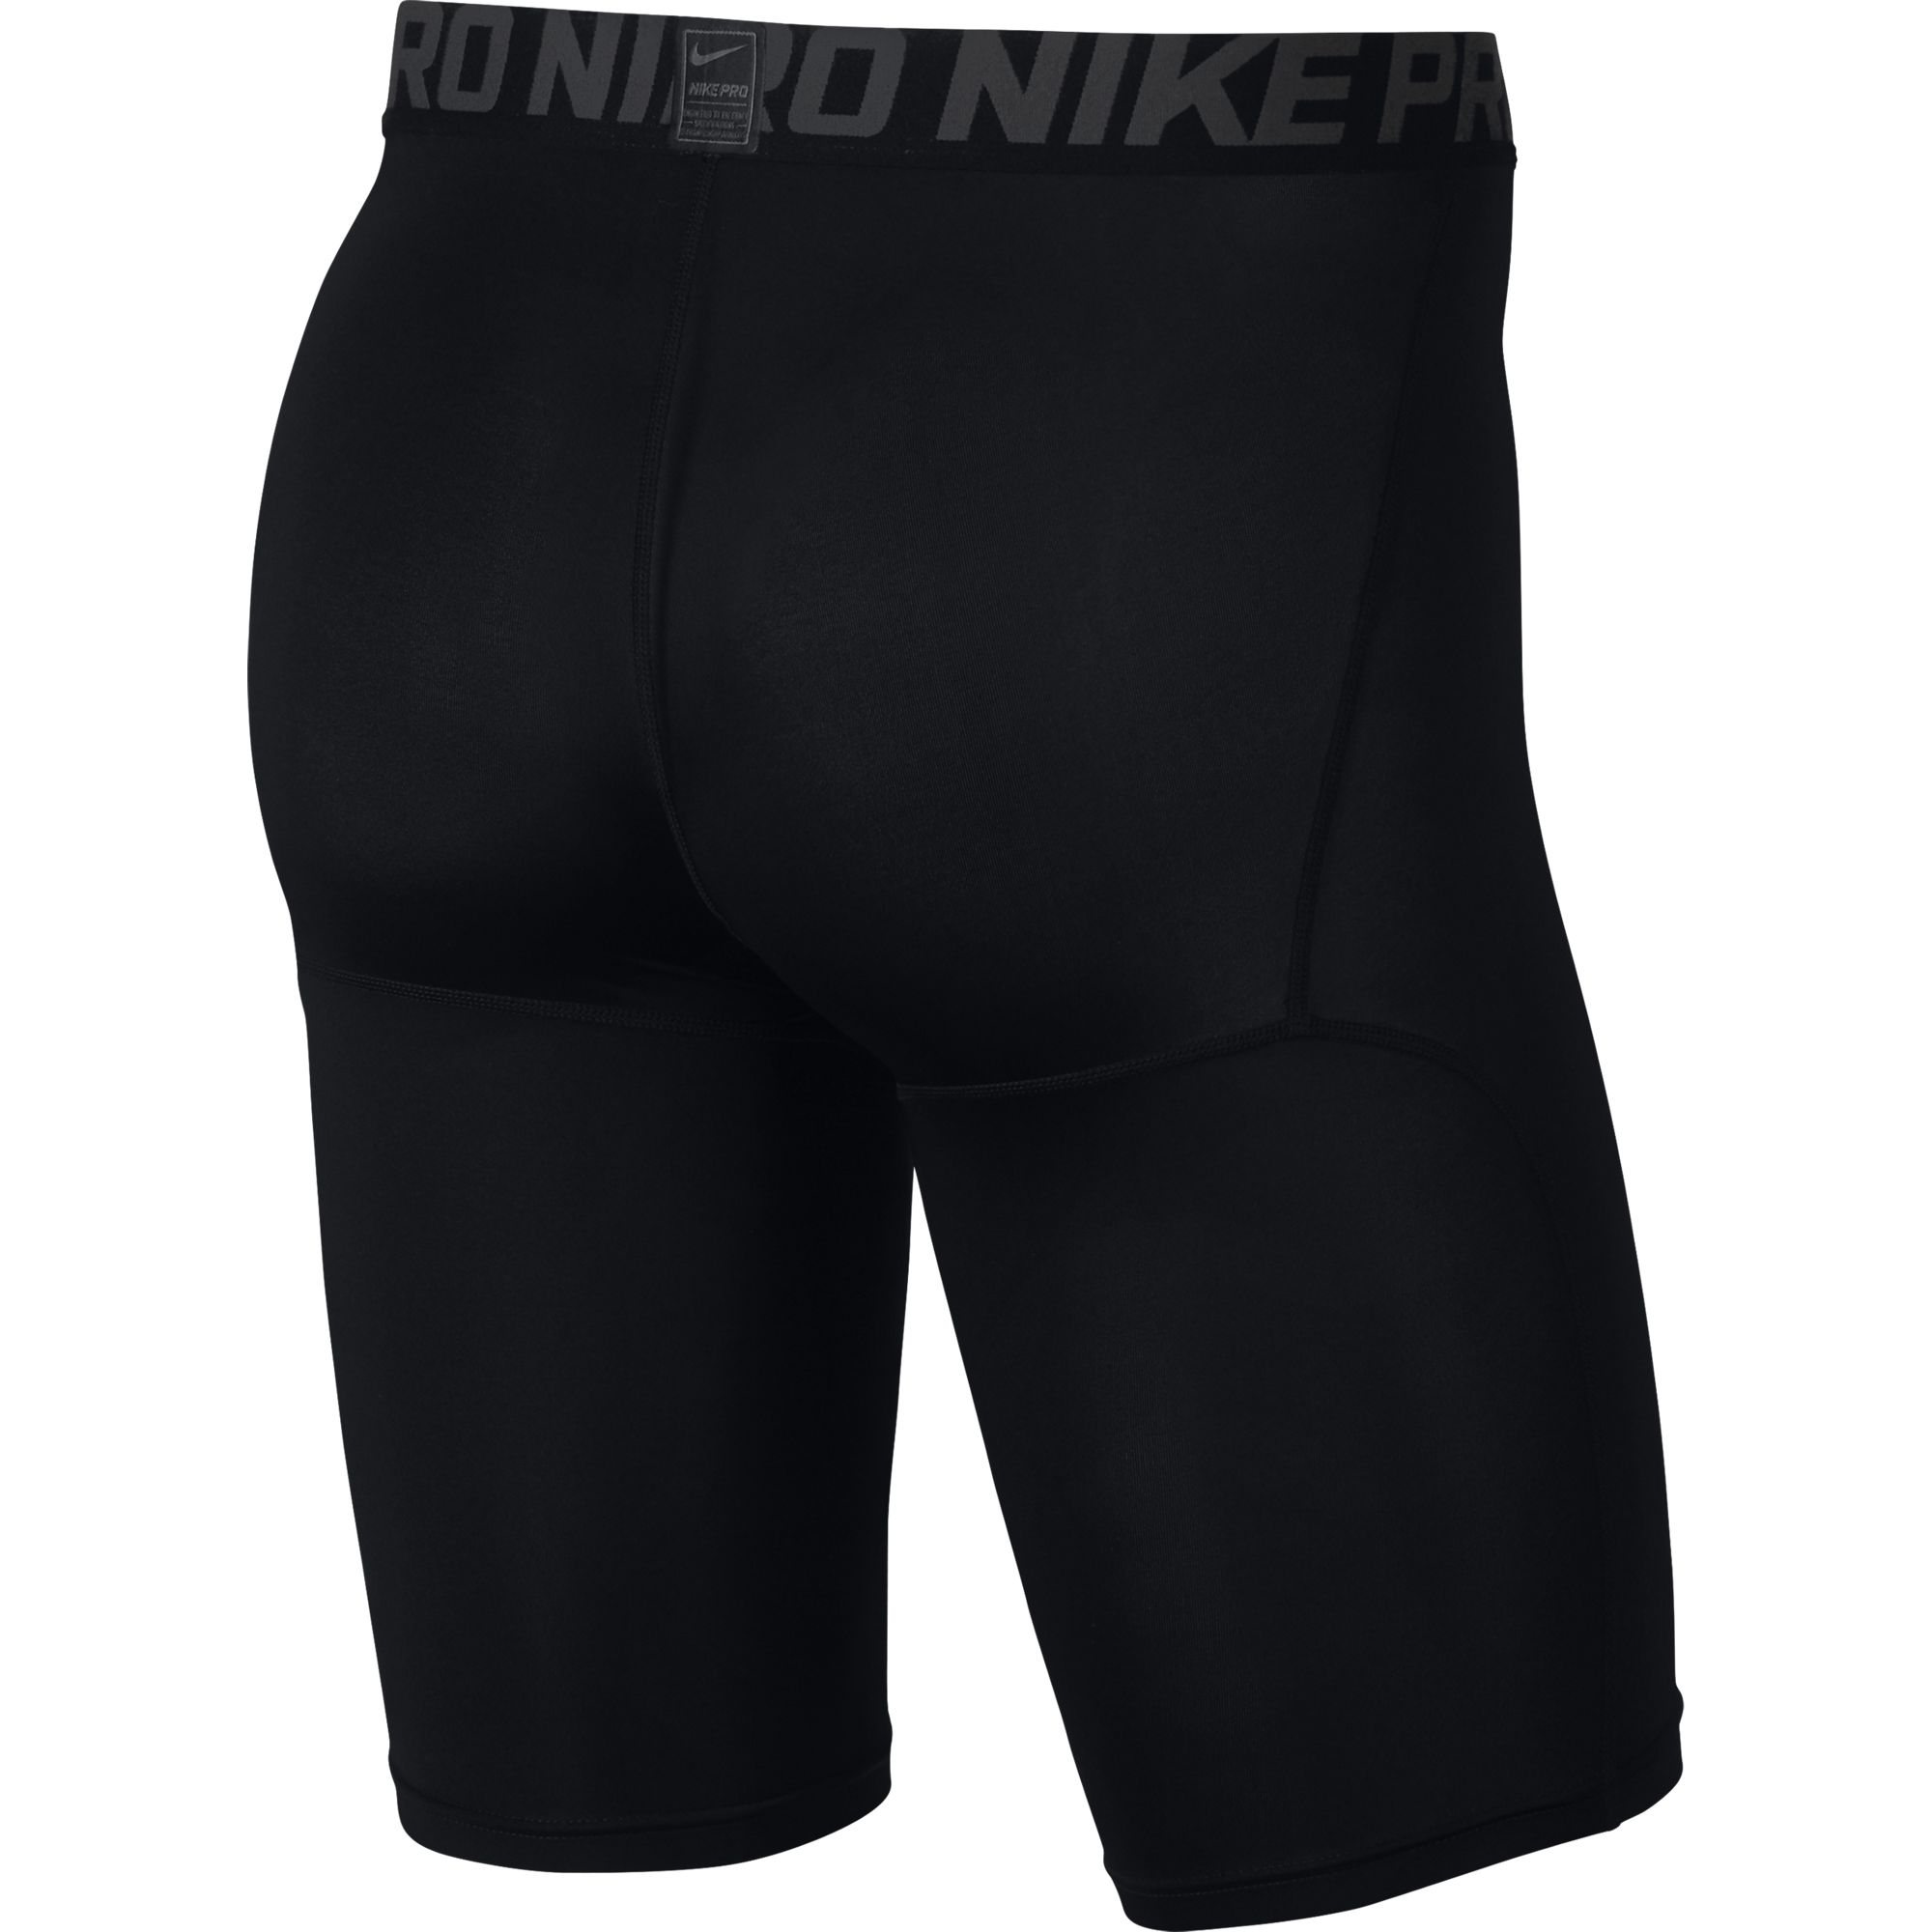 Nike Pro Base Layer Shorts - Black/Anthracite/White